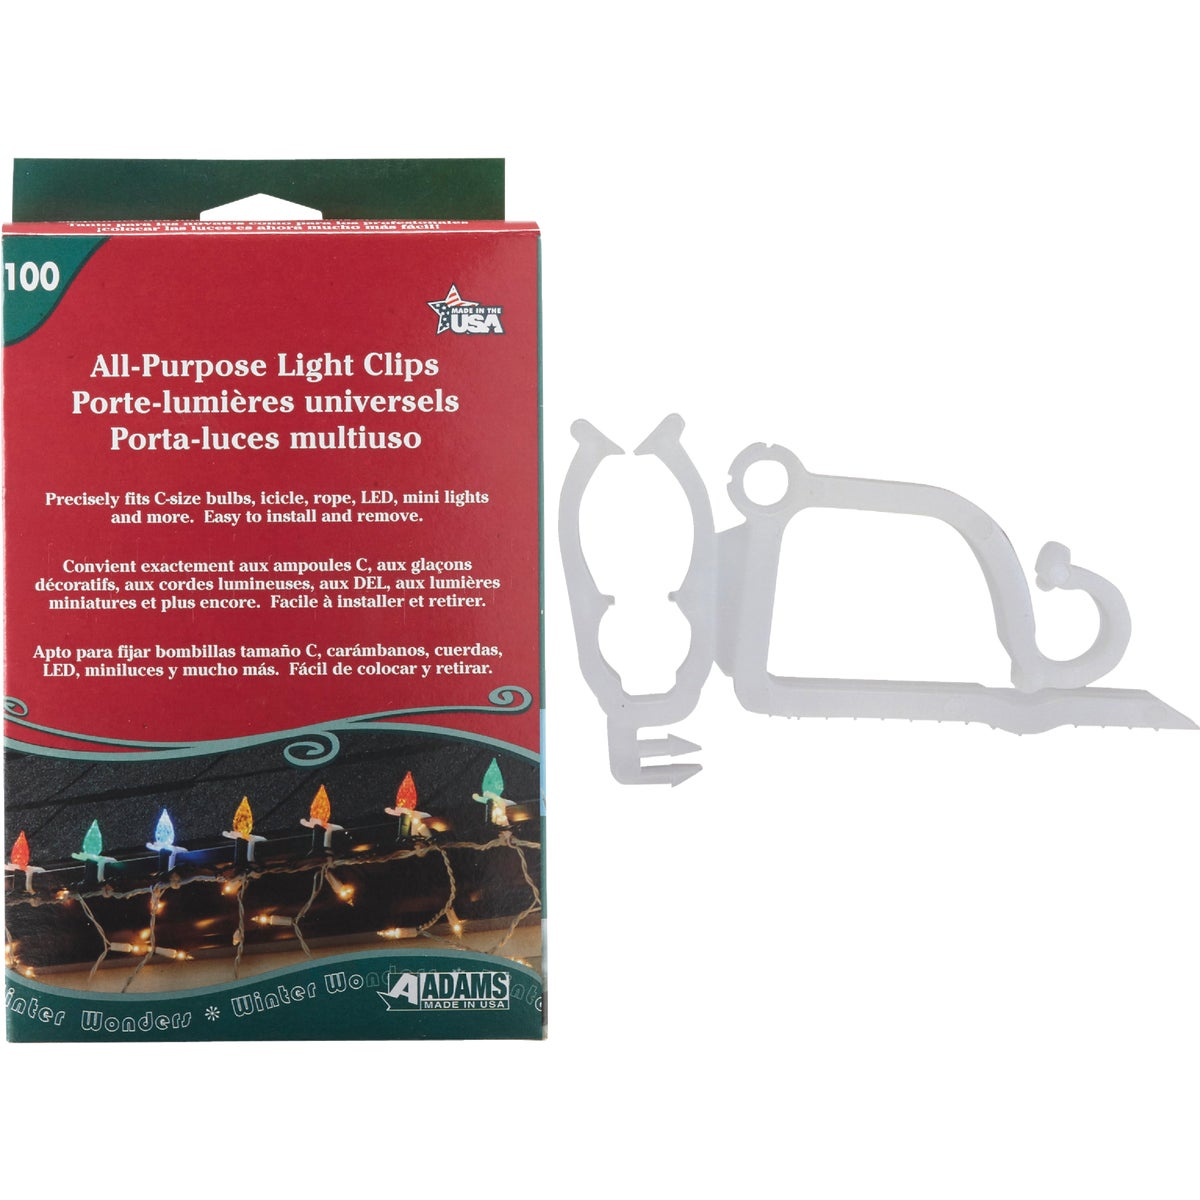 100PK LIGHT CLIP - 9040991634 by Adams Mfg/christmas